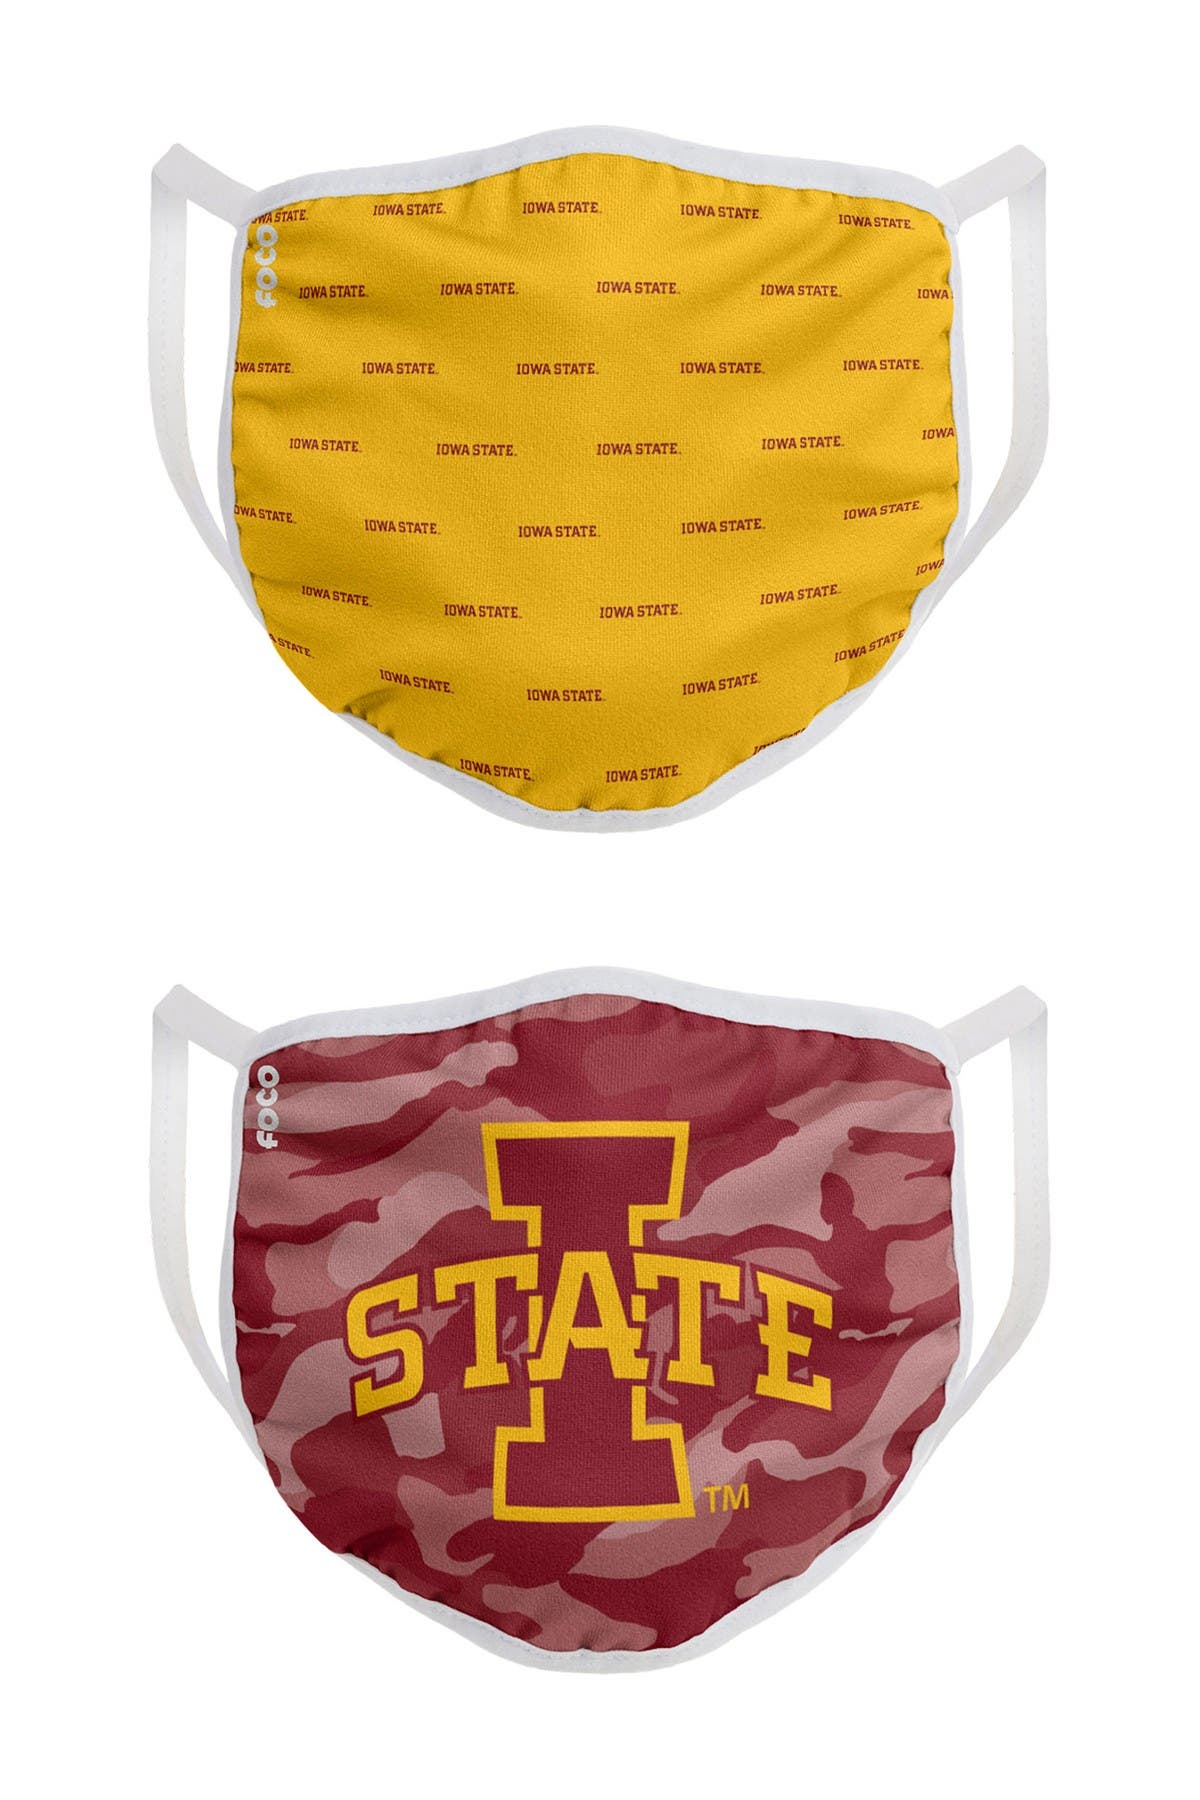 Image of FOCO NCAA Iowa State Clutch Printed Face Cover - Pack of 2